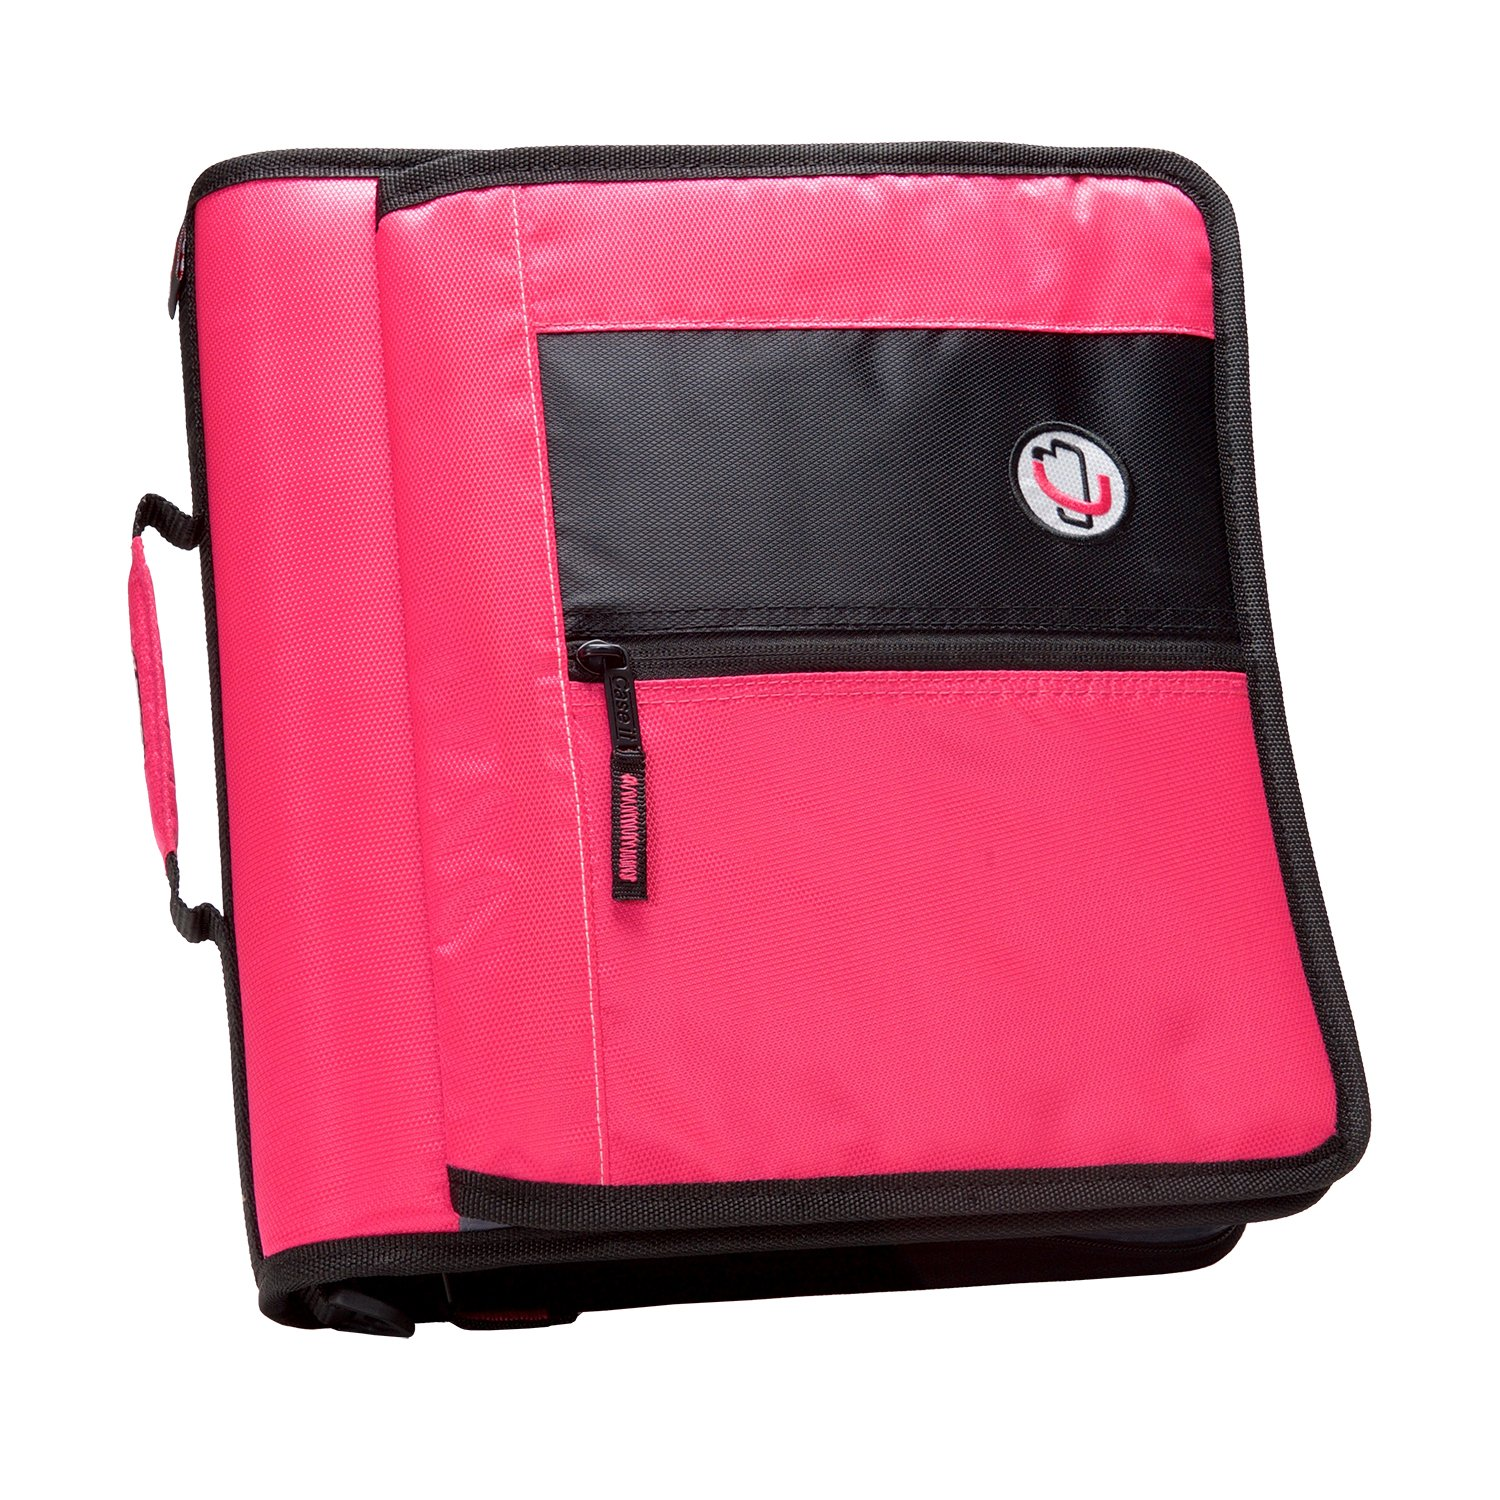 Top 10 Best Zipper Binders For Students Reviews 2019 2020